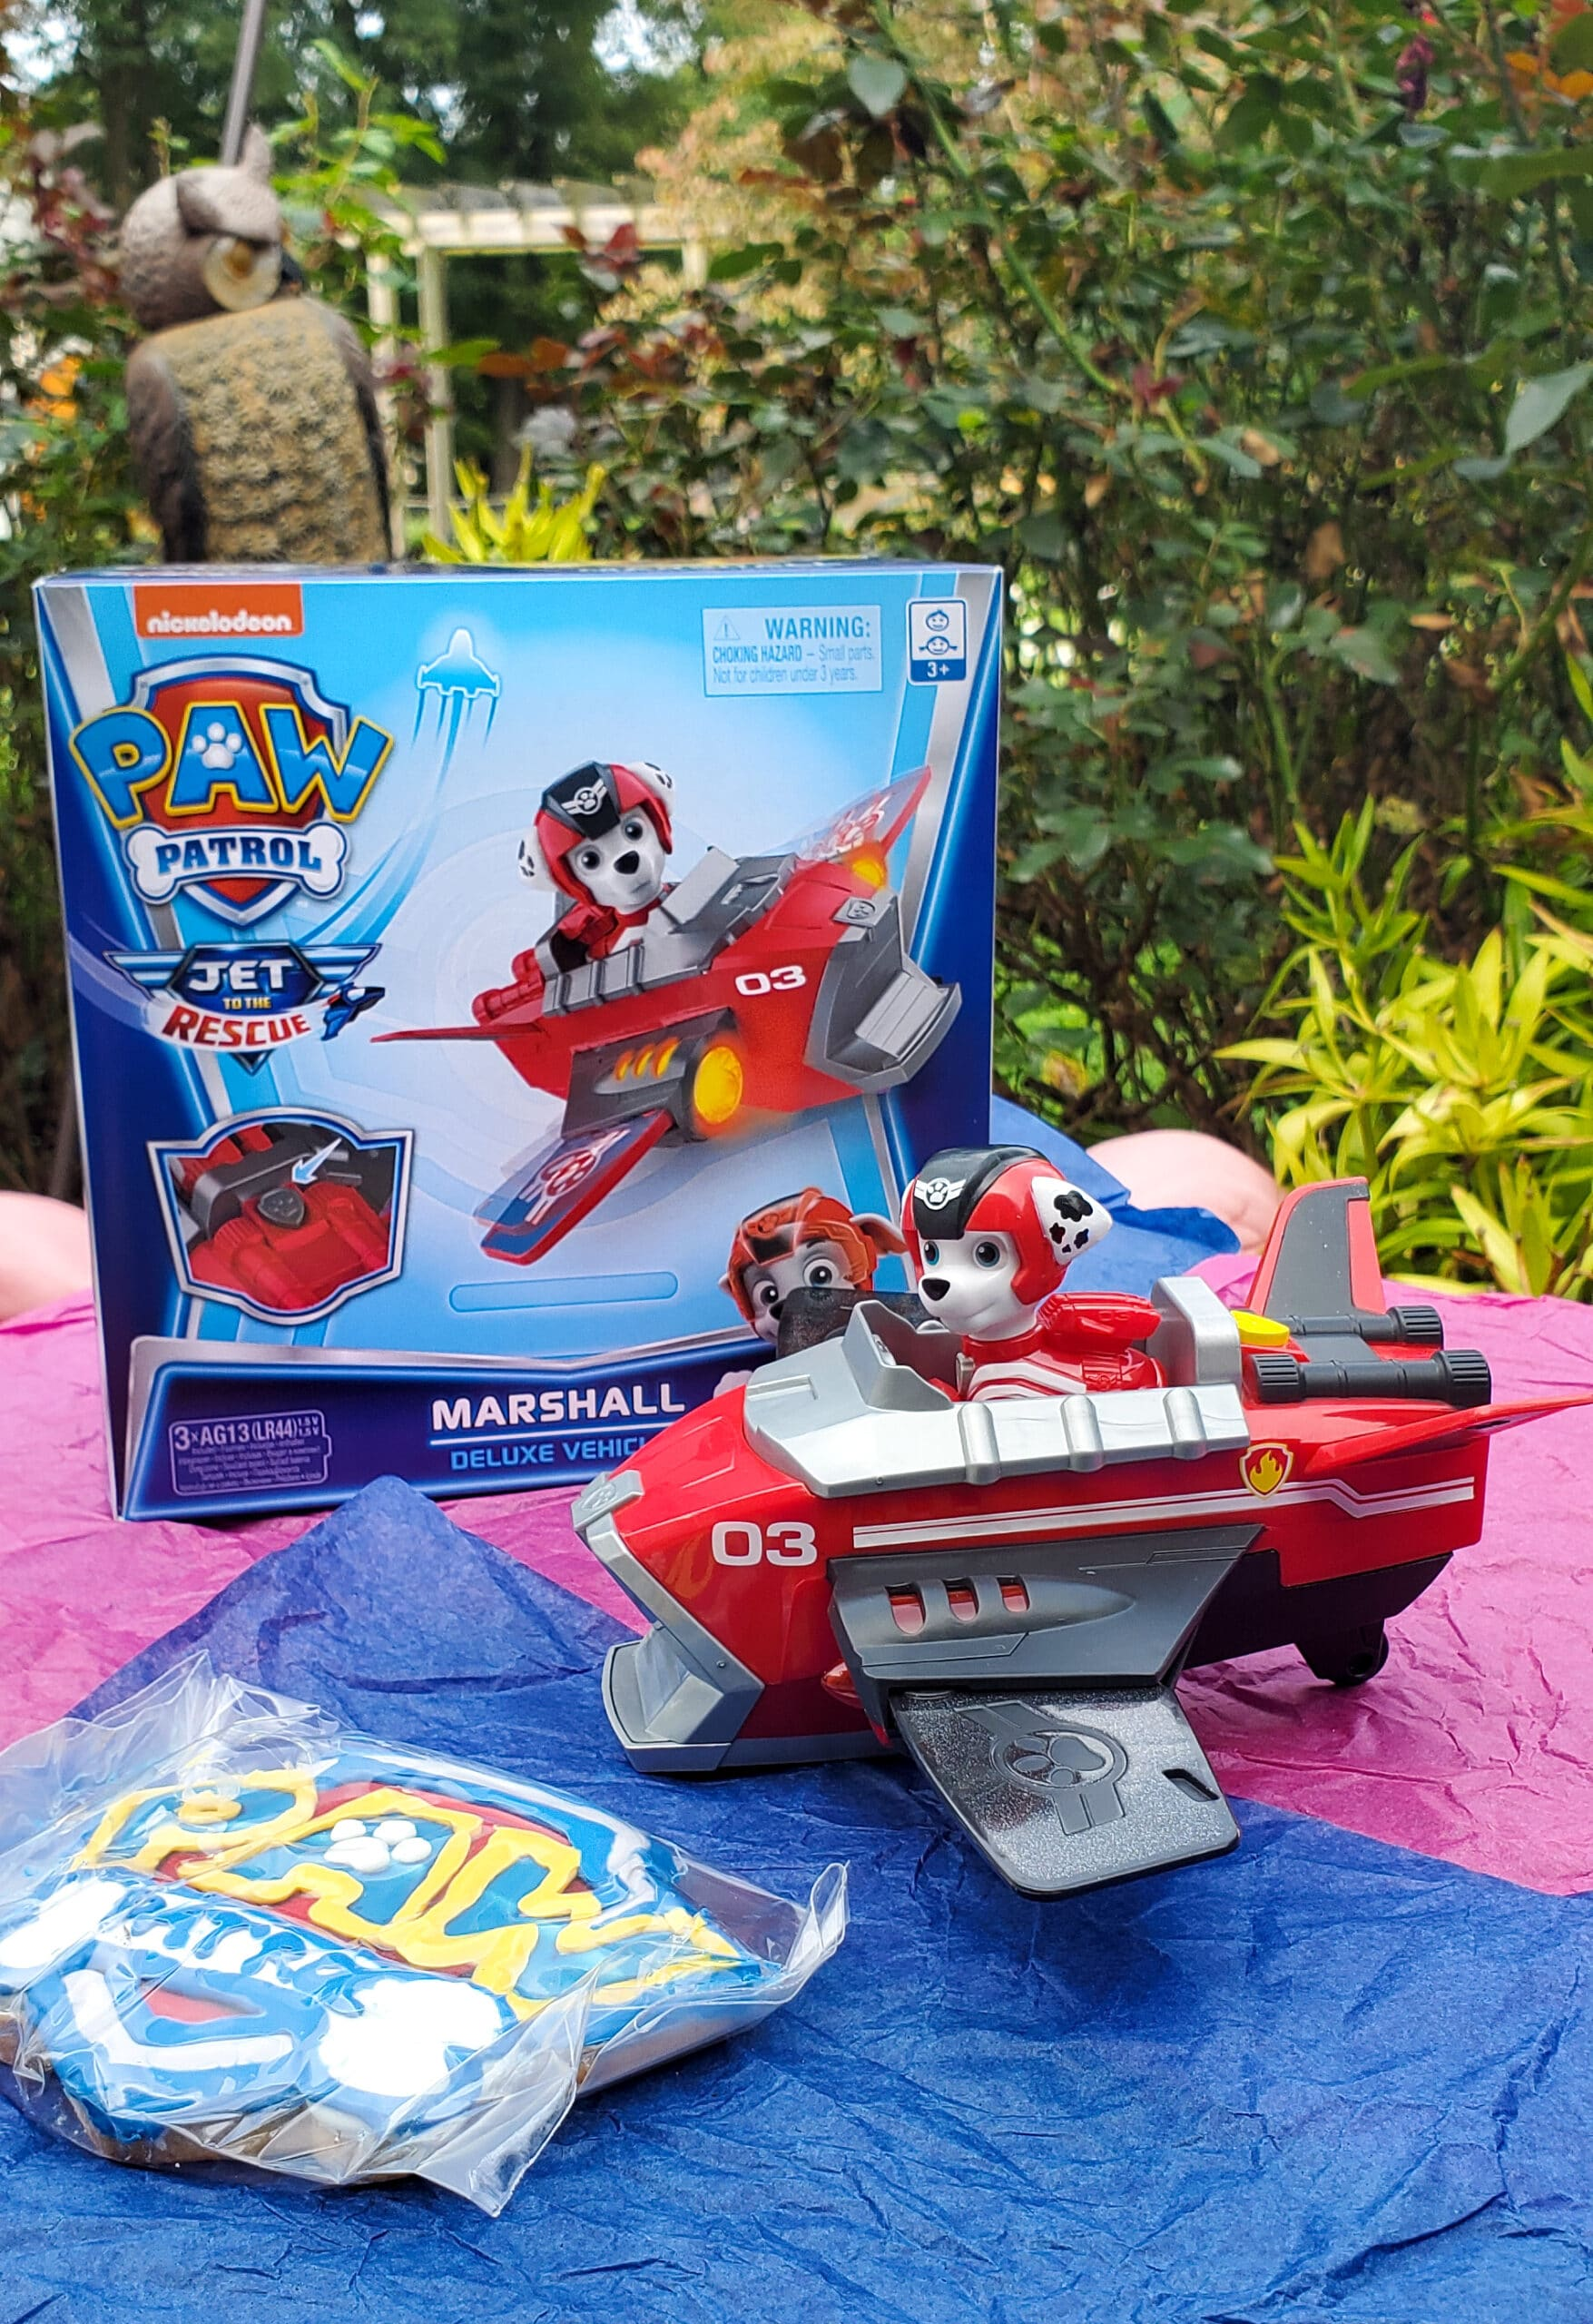 PAW Patrol: Jet to the Rescue Marshal Deluxe Vehicle. Get ready for high-flying adventures with the PAW Patrol pups in the brand-new DVD PAW Patrol: Jet to the Rescue. In celebration of the release of this special feature, Nickelodeon sent us a surprise box full of PAW Patrol goodies! View all of the fun new PAW Patrol: Jet to the Rescue themed toys available on my blog.